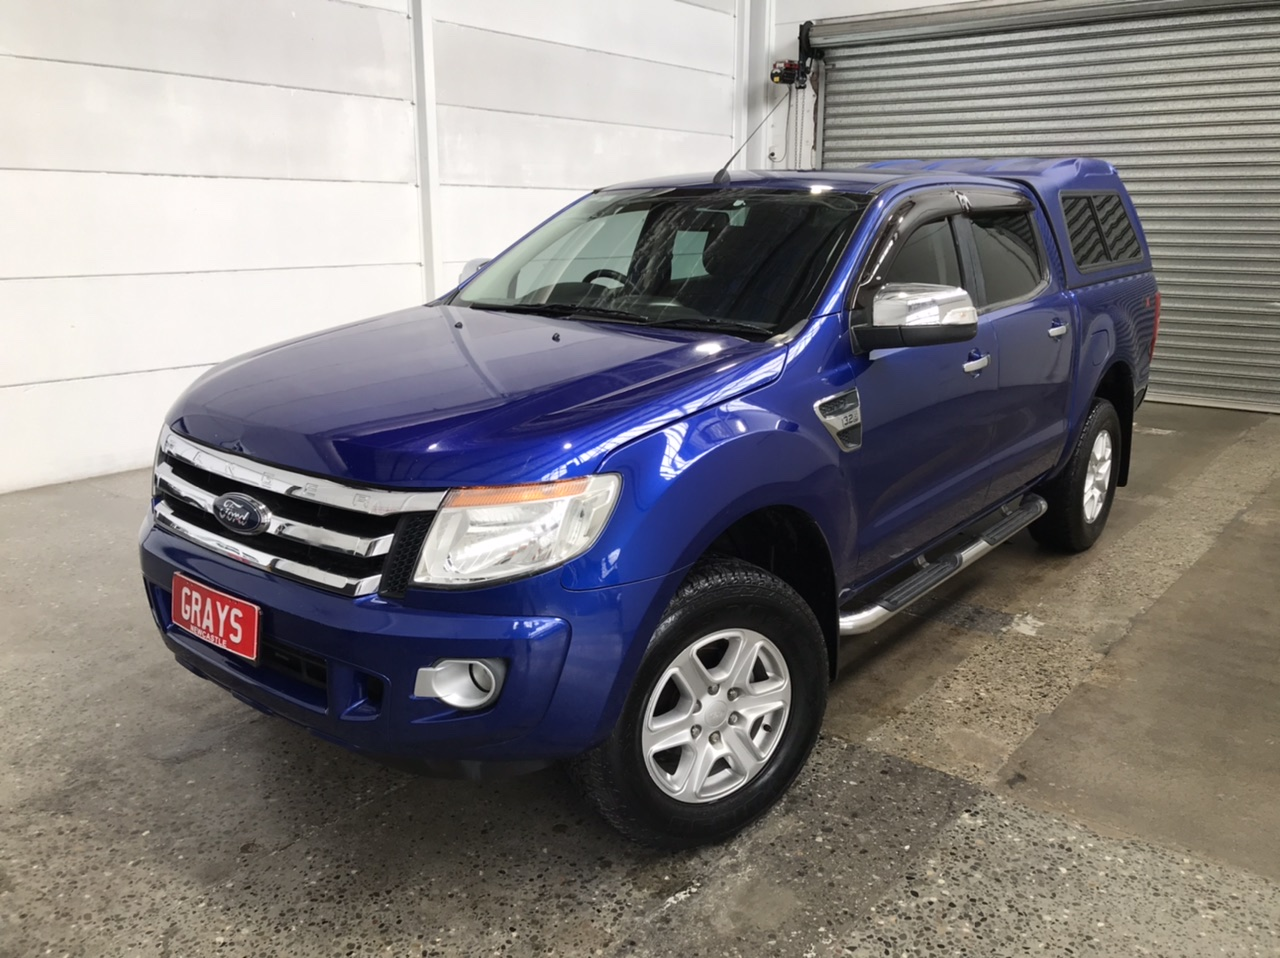 2012 Ford Ranger XLT 3.2 (4x4) PX Turbo Diesel Automatic Dual Cab